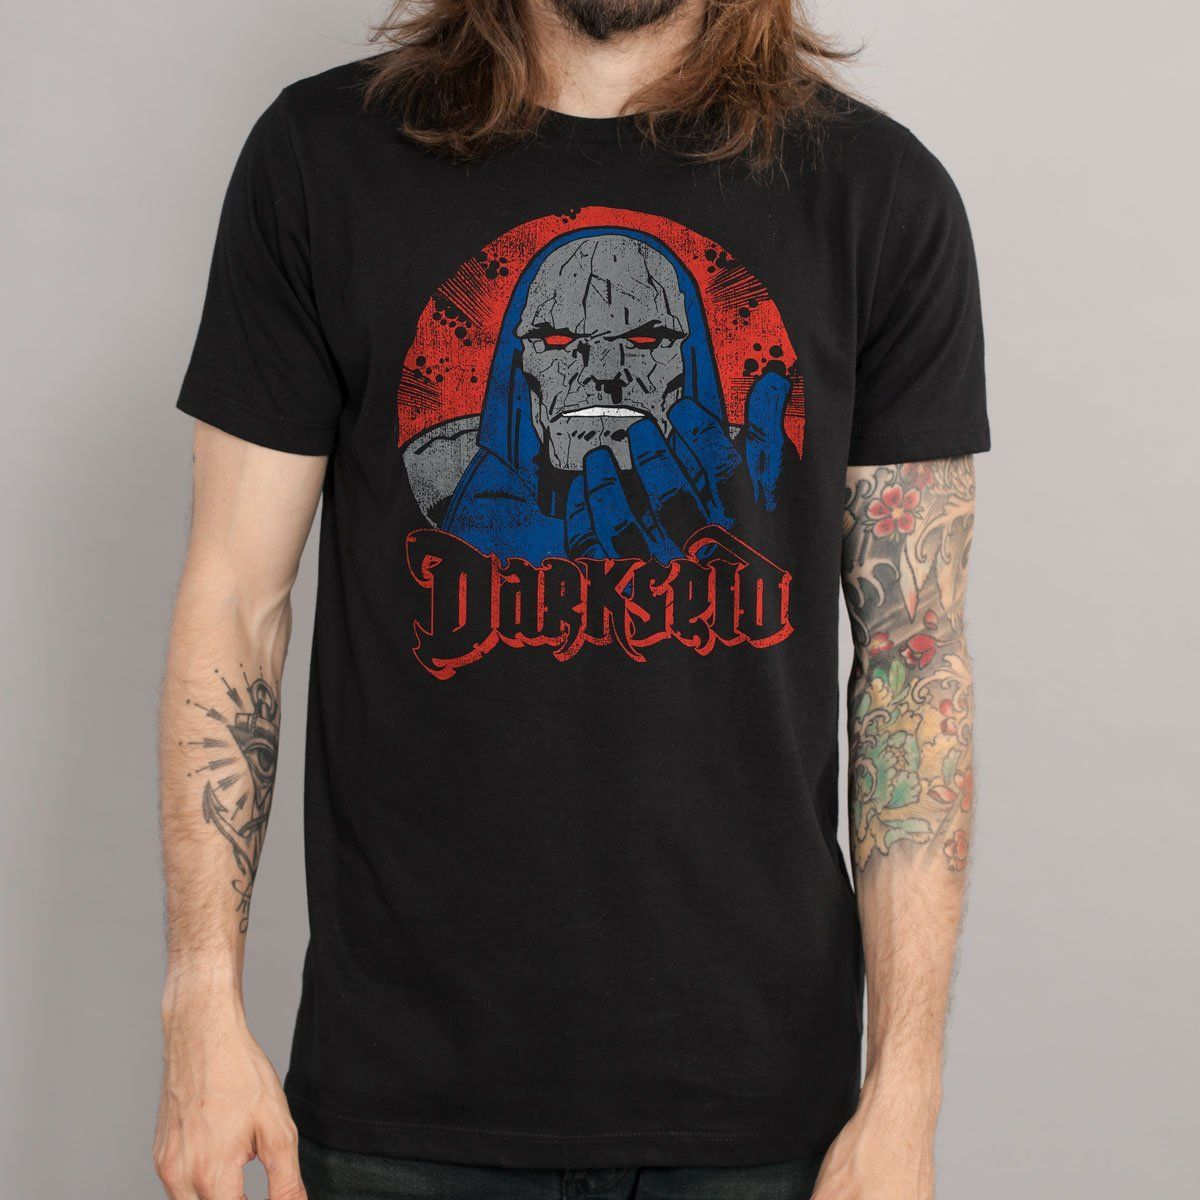 Camiseta Masculina The Darkseid Oficial - bandUP Store Marketplace